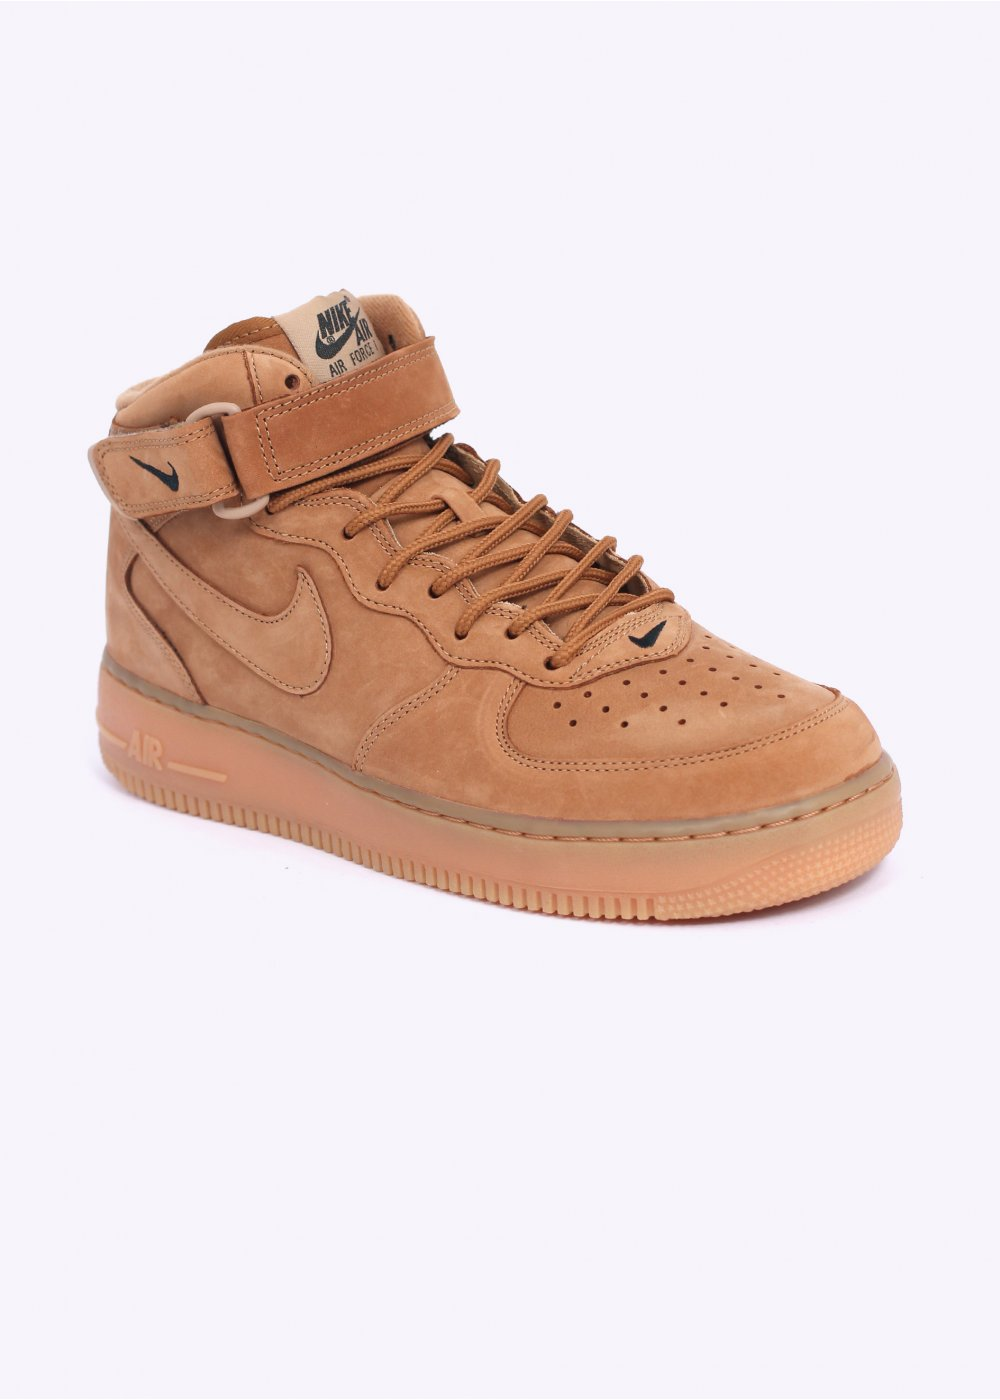 Outdoor Green Qs 'wheat Mid Pack' Force Quickstrike 1 Air Nike Flax Premium Trainers '07 f67IYbymgv